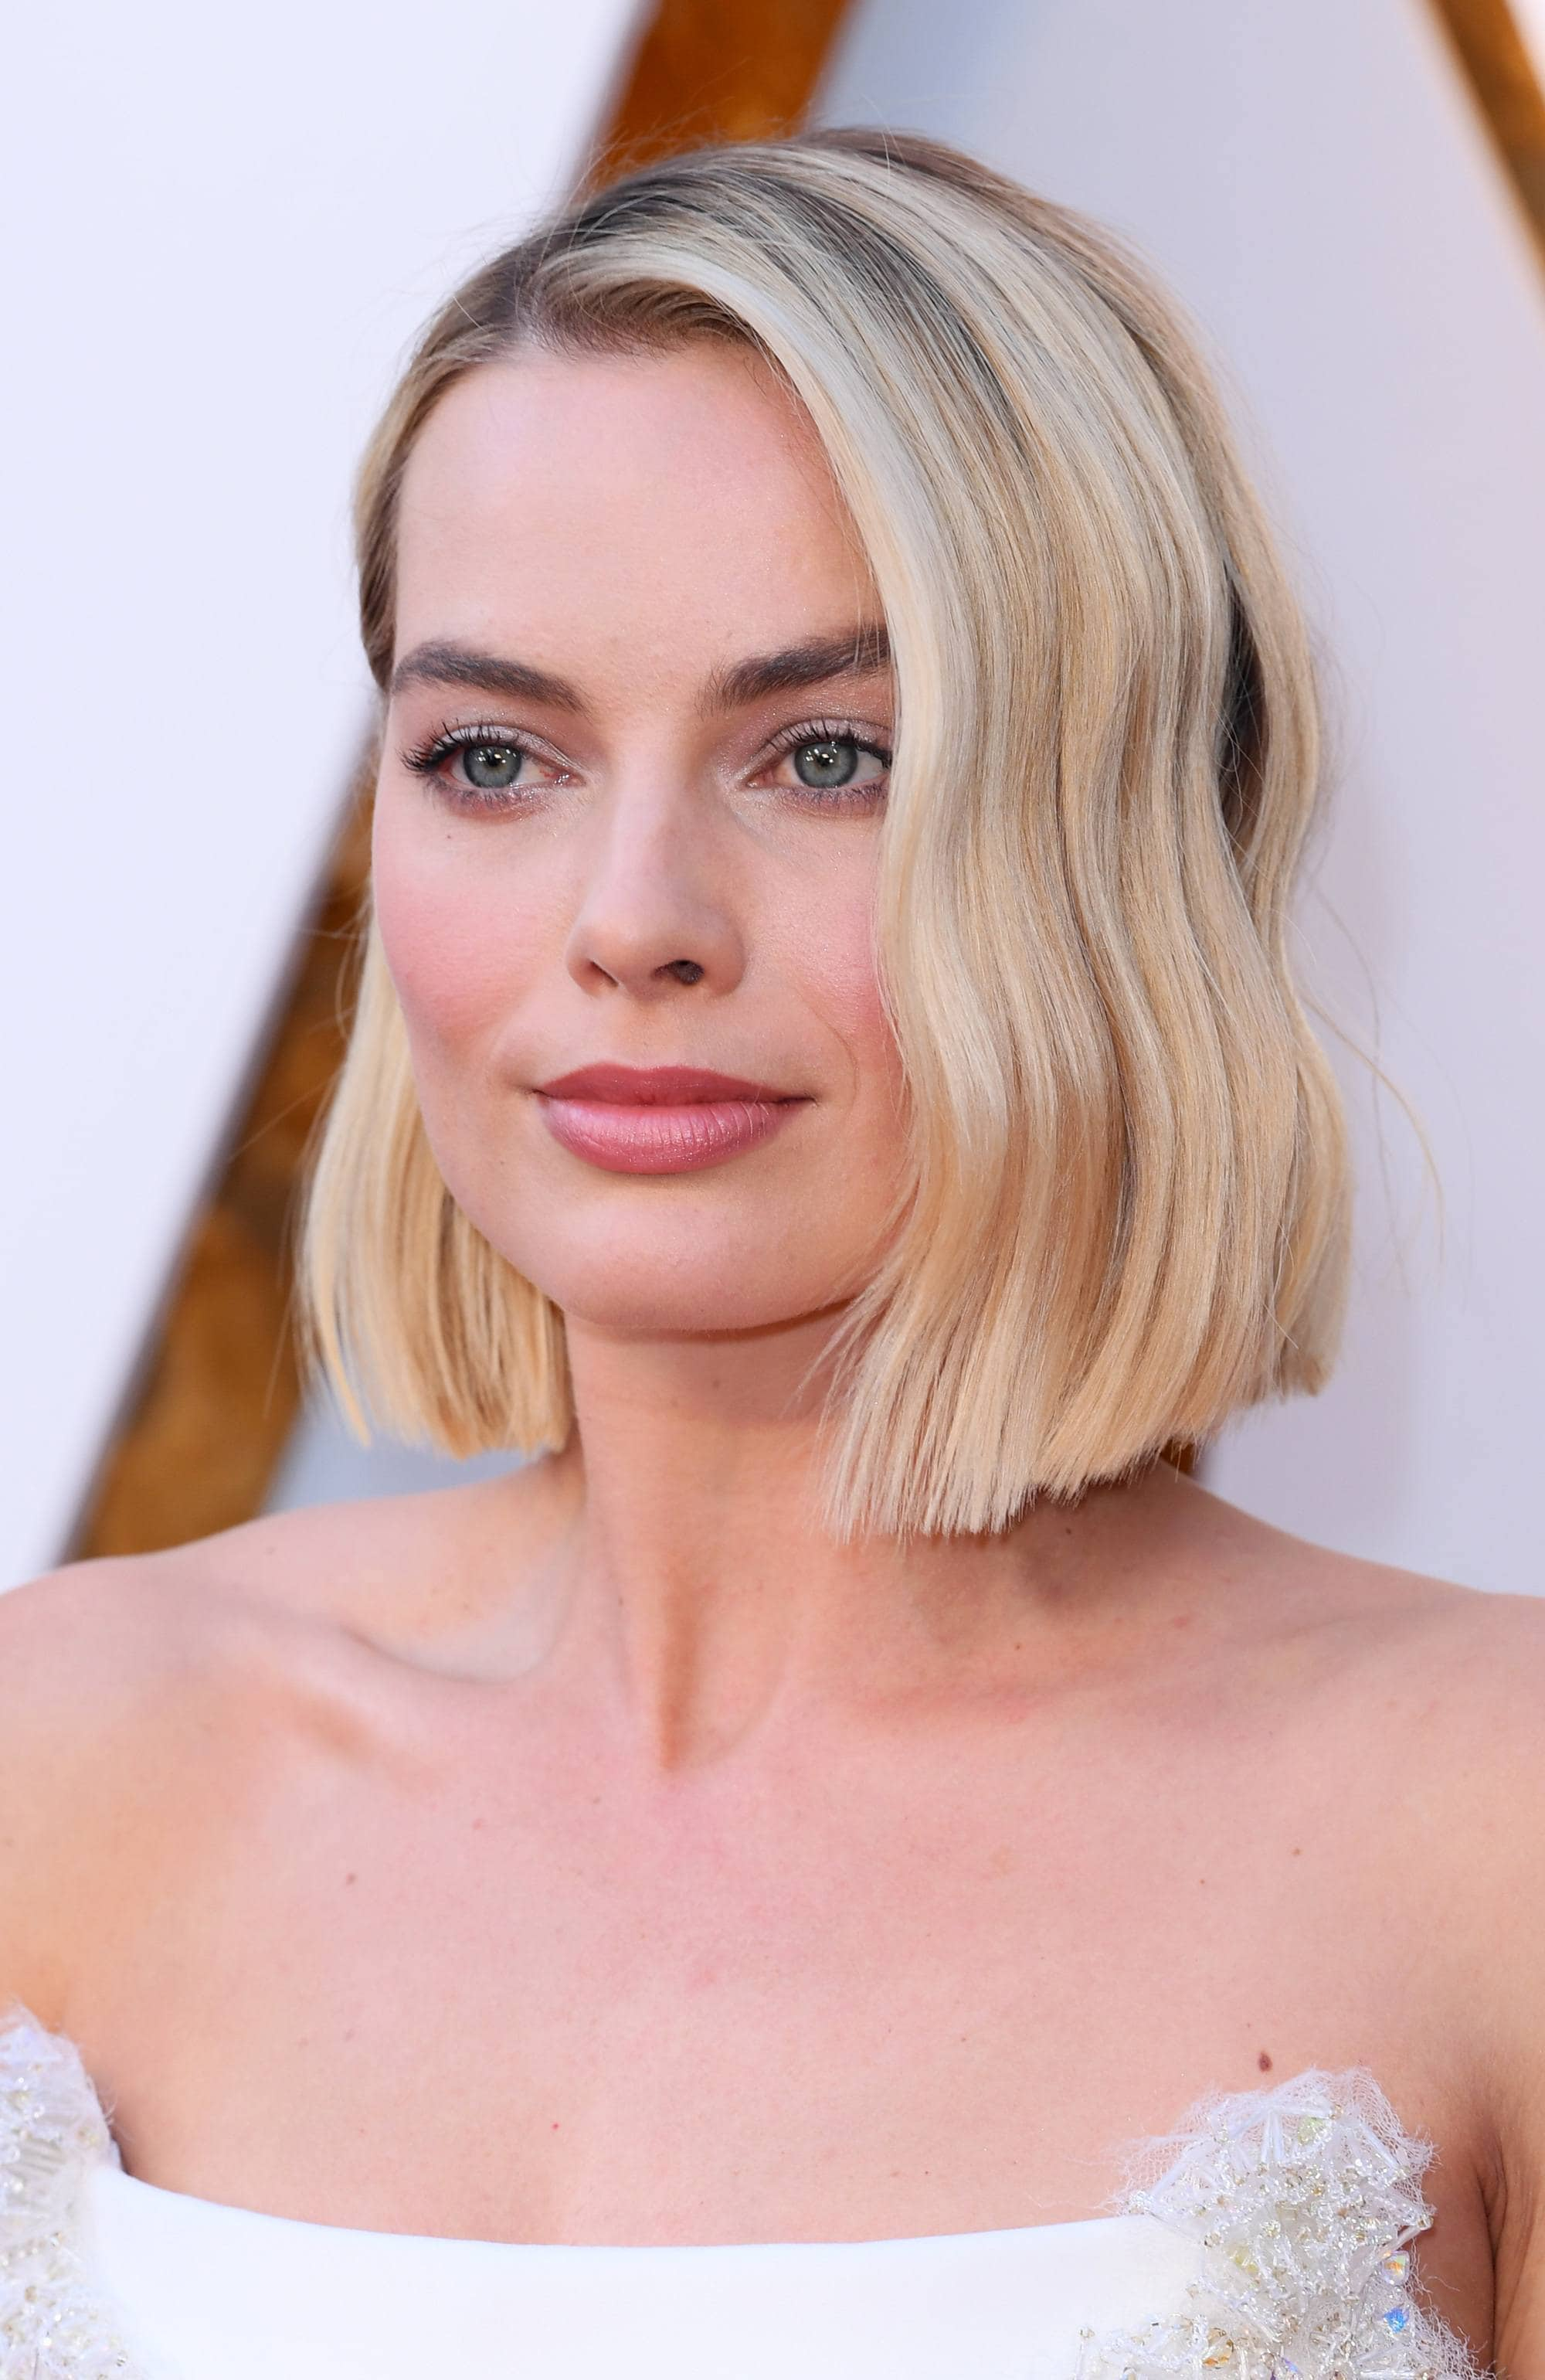 12 flattering short hairstyles for heart-shaped faces